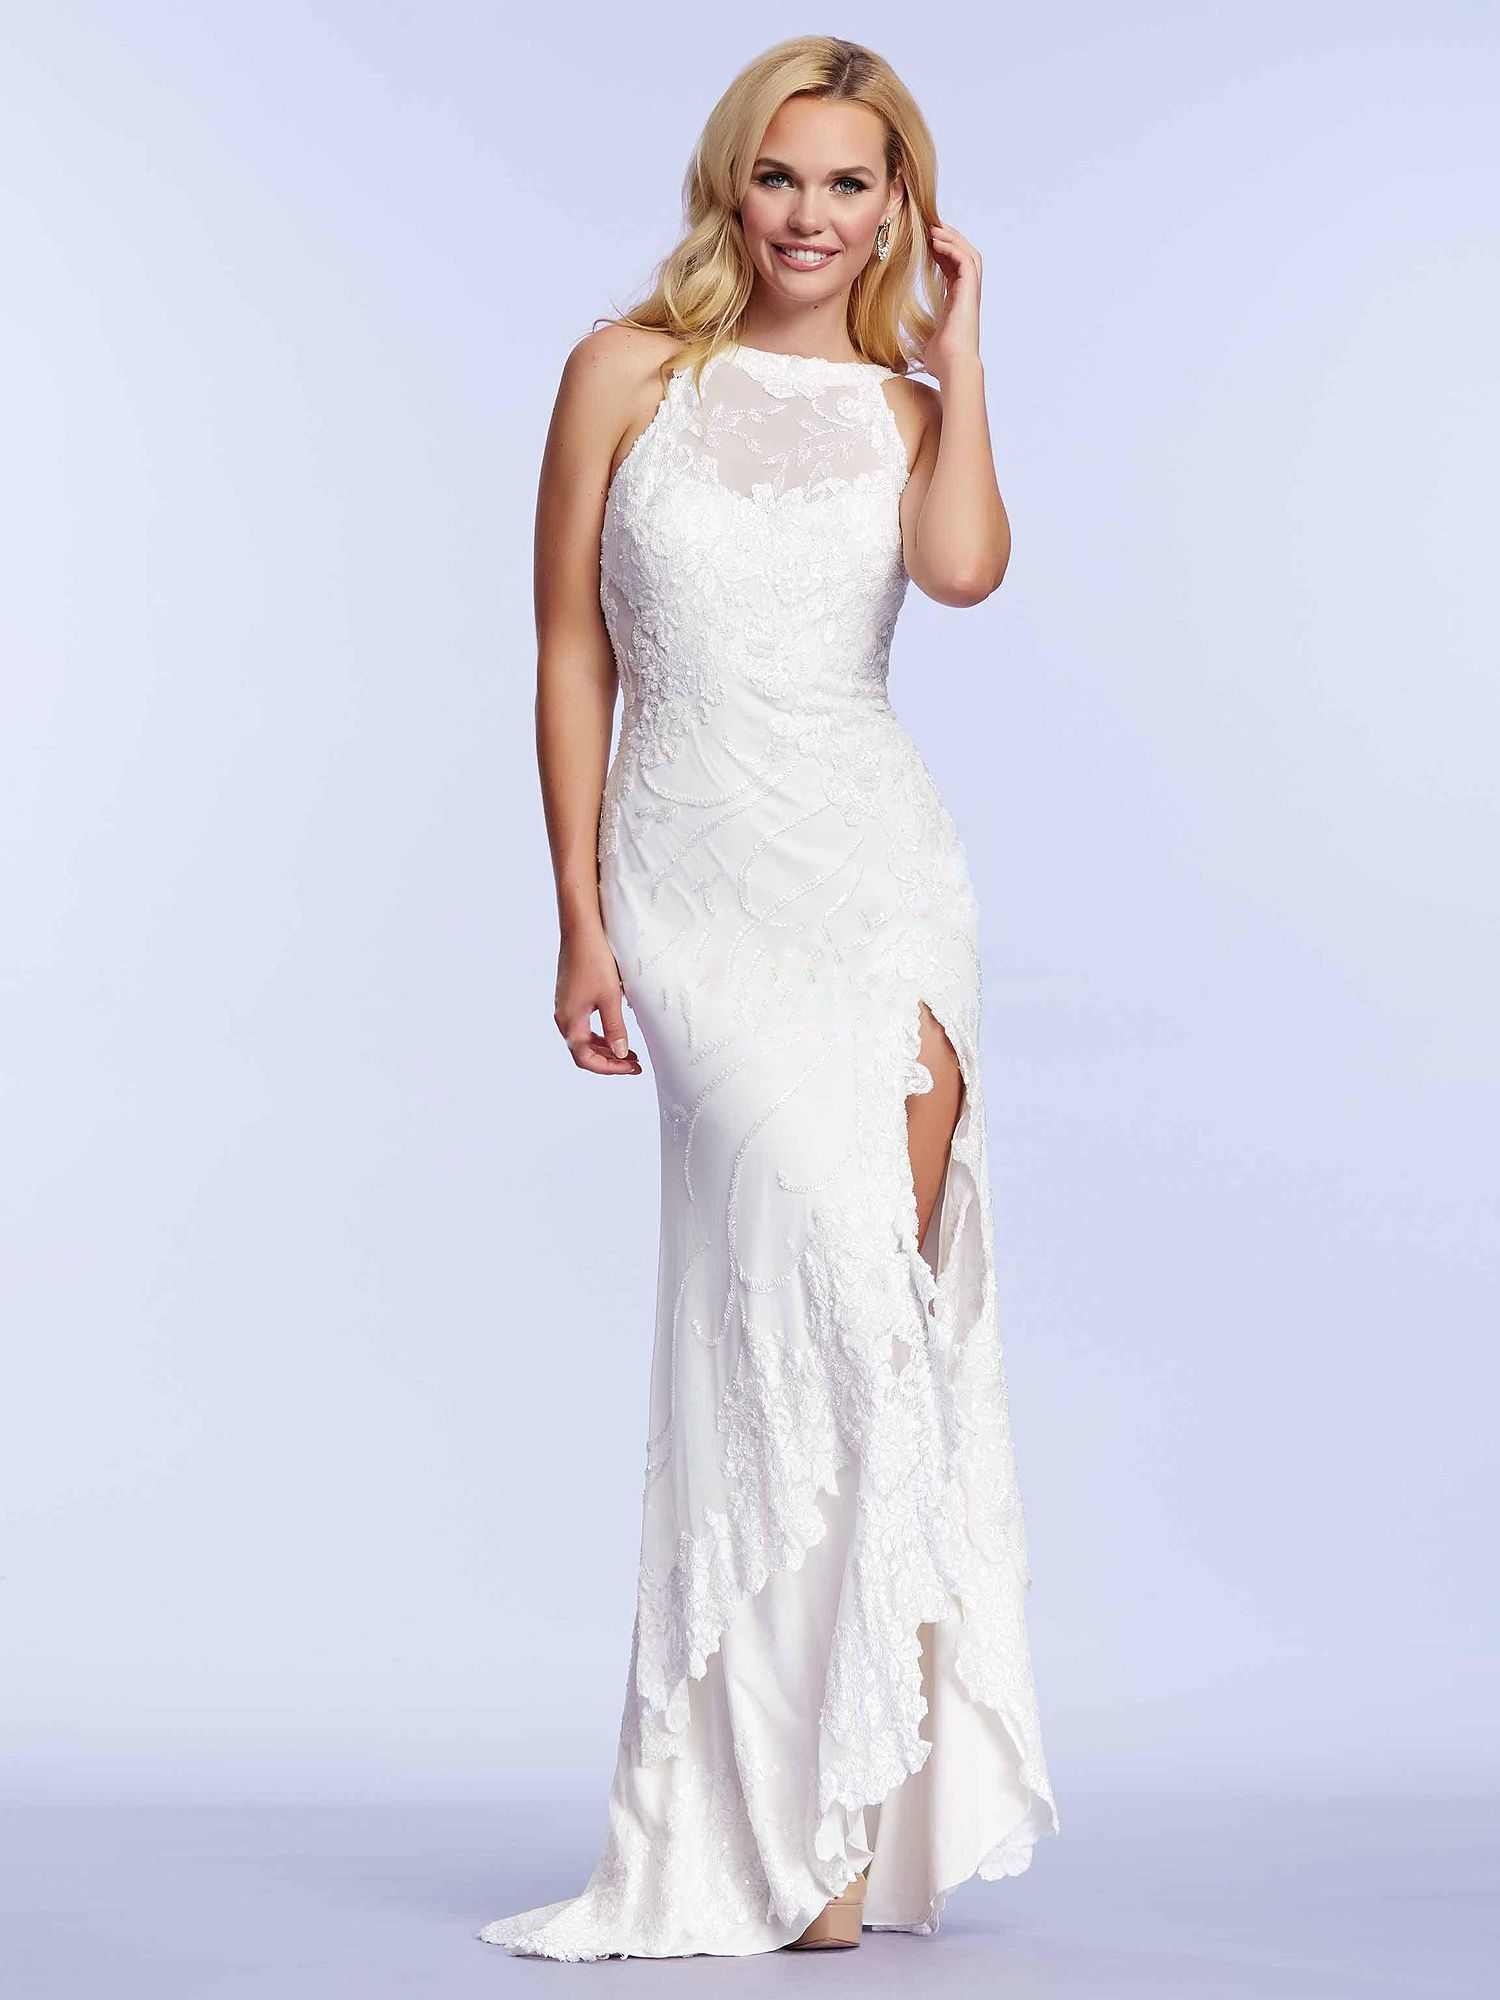 Explore Second Wedding Dresses Weddings And More